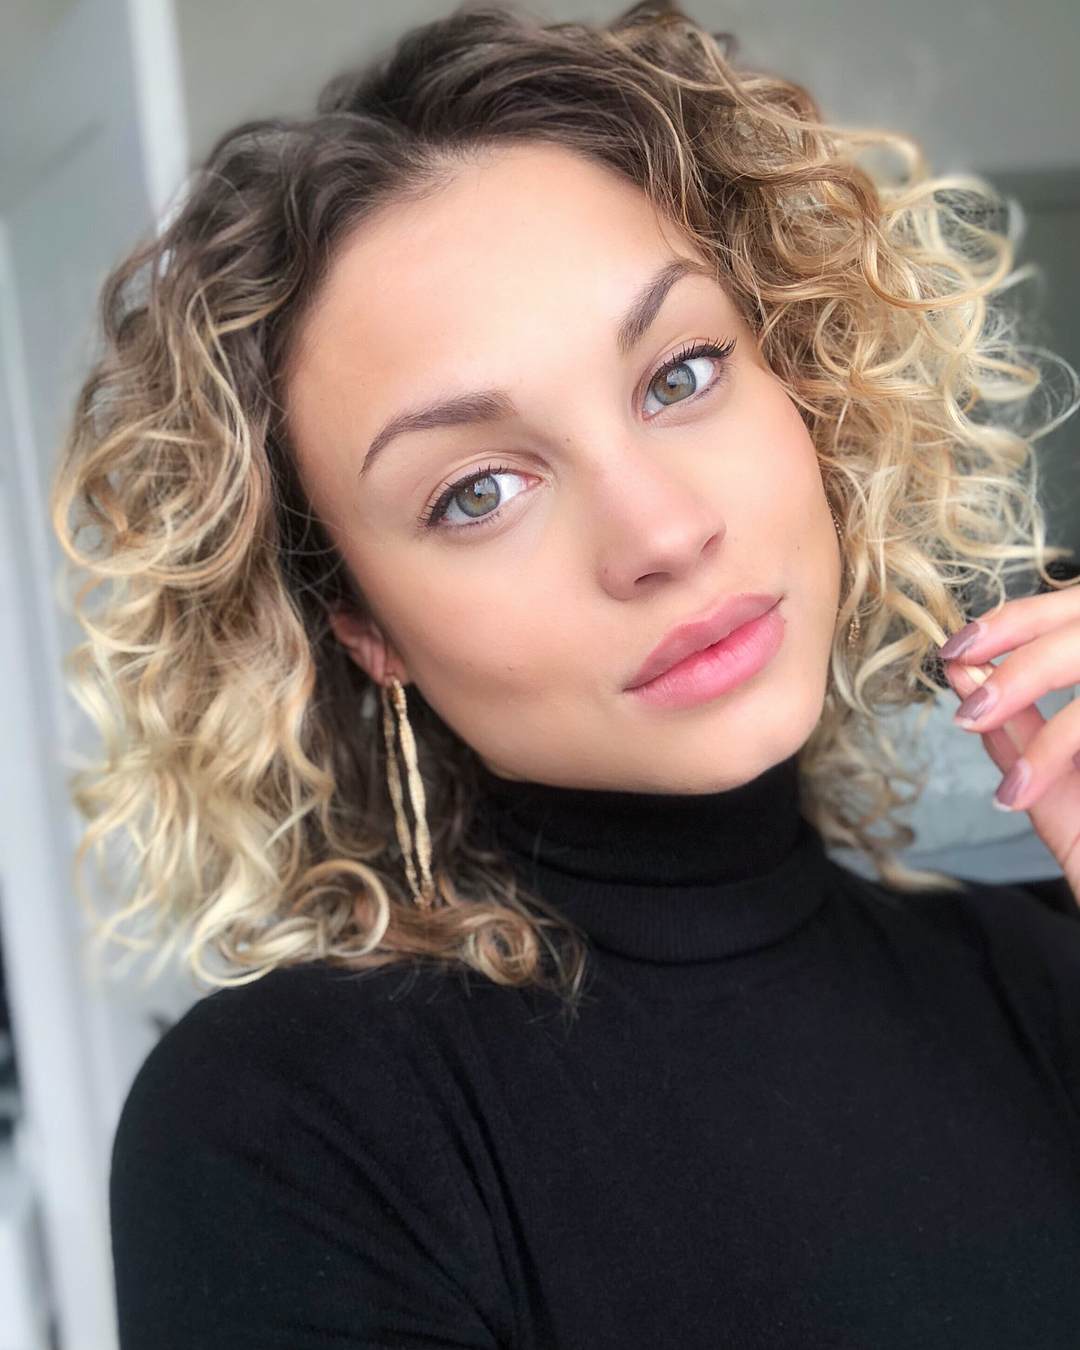 Selfie Stephanie Rose Bertram nude photos 2019